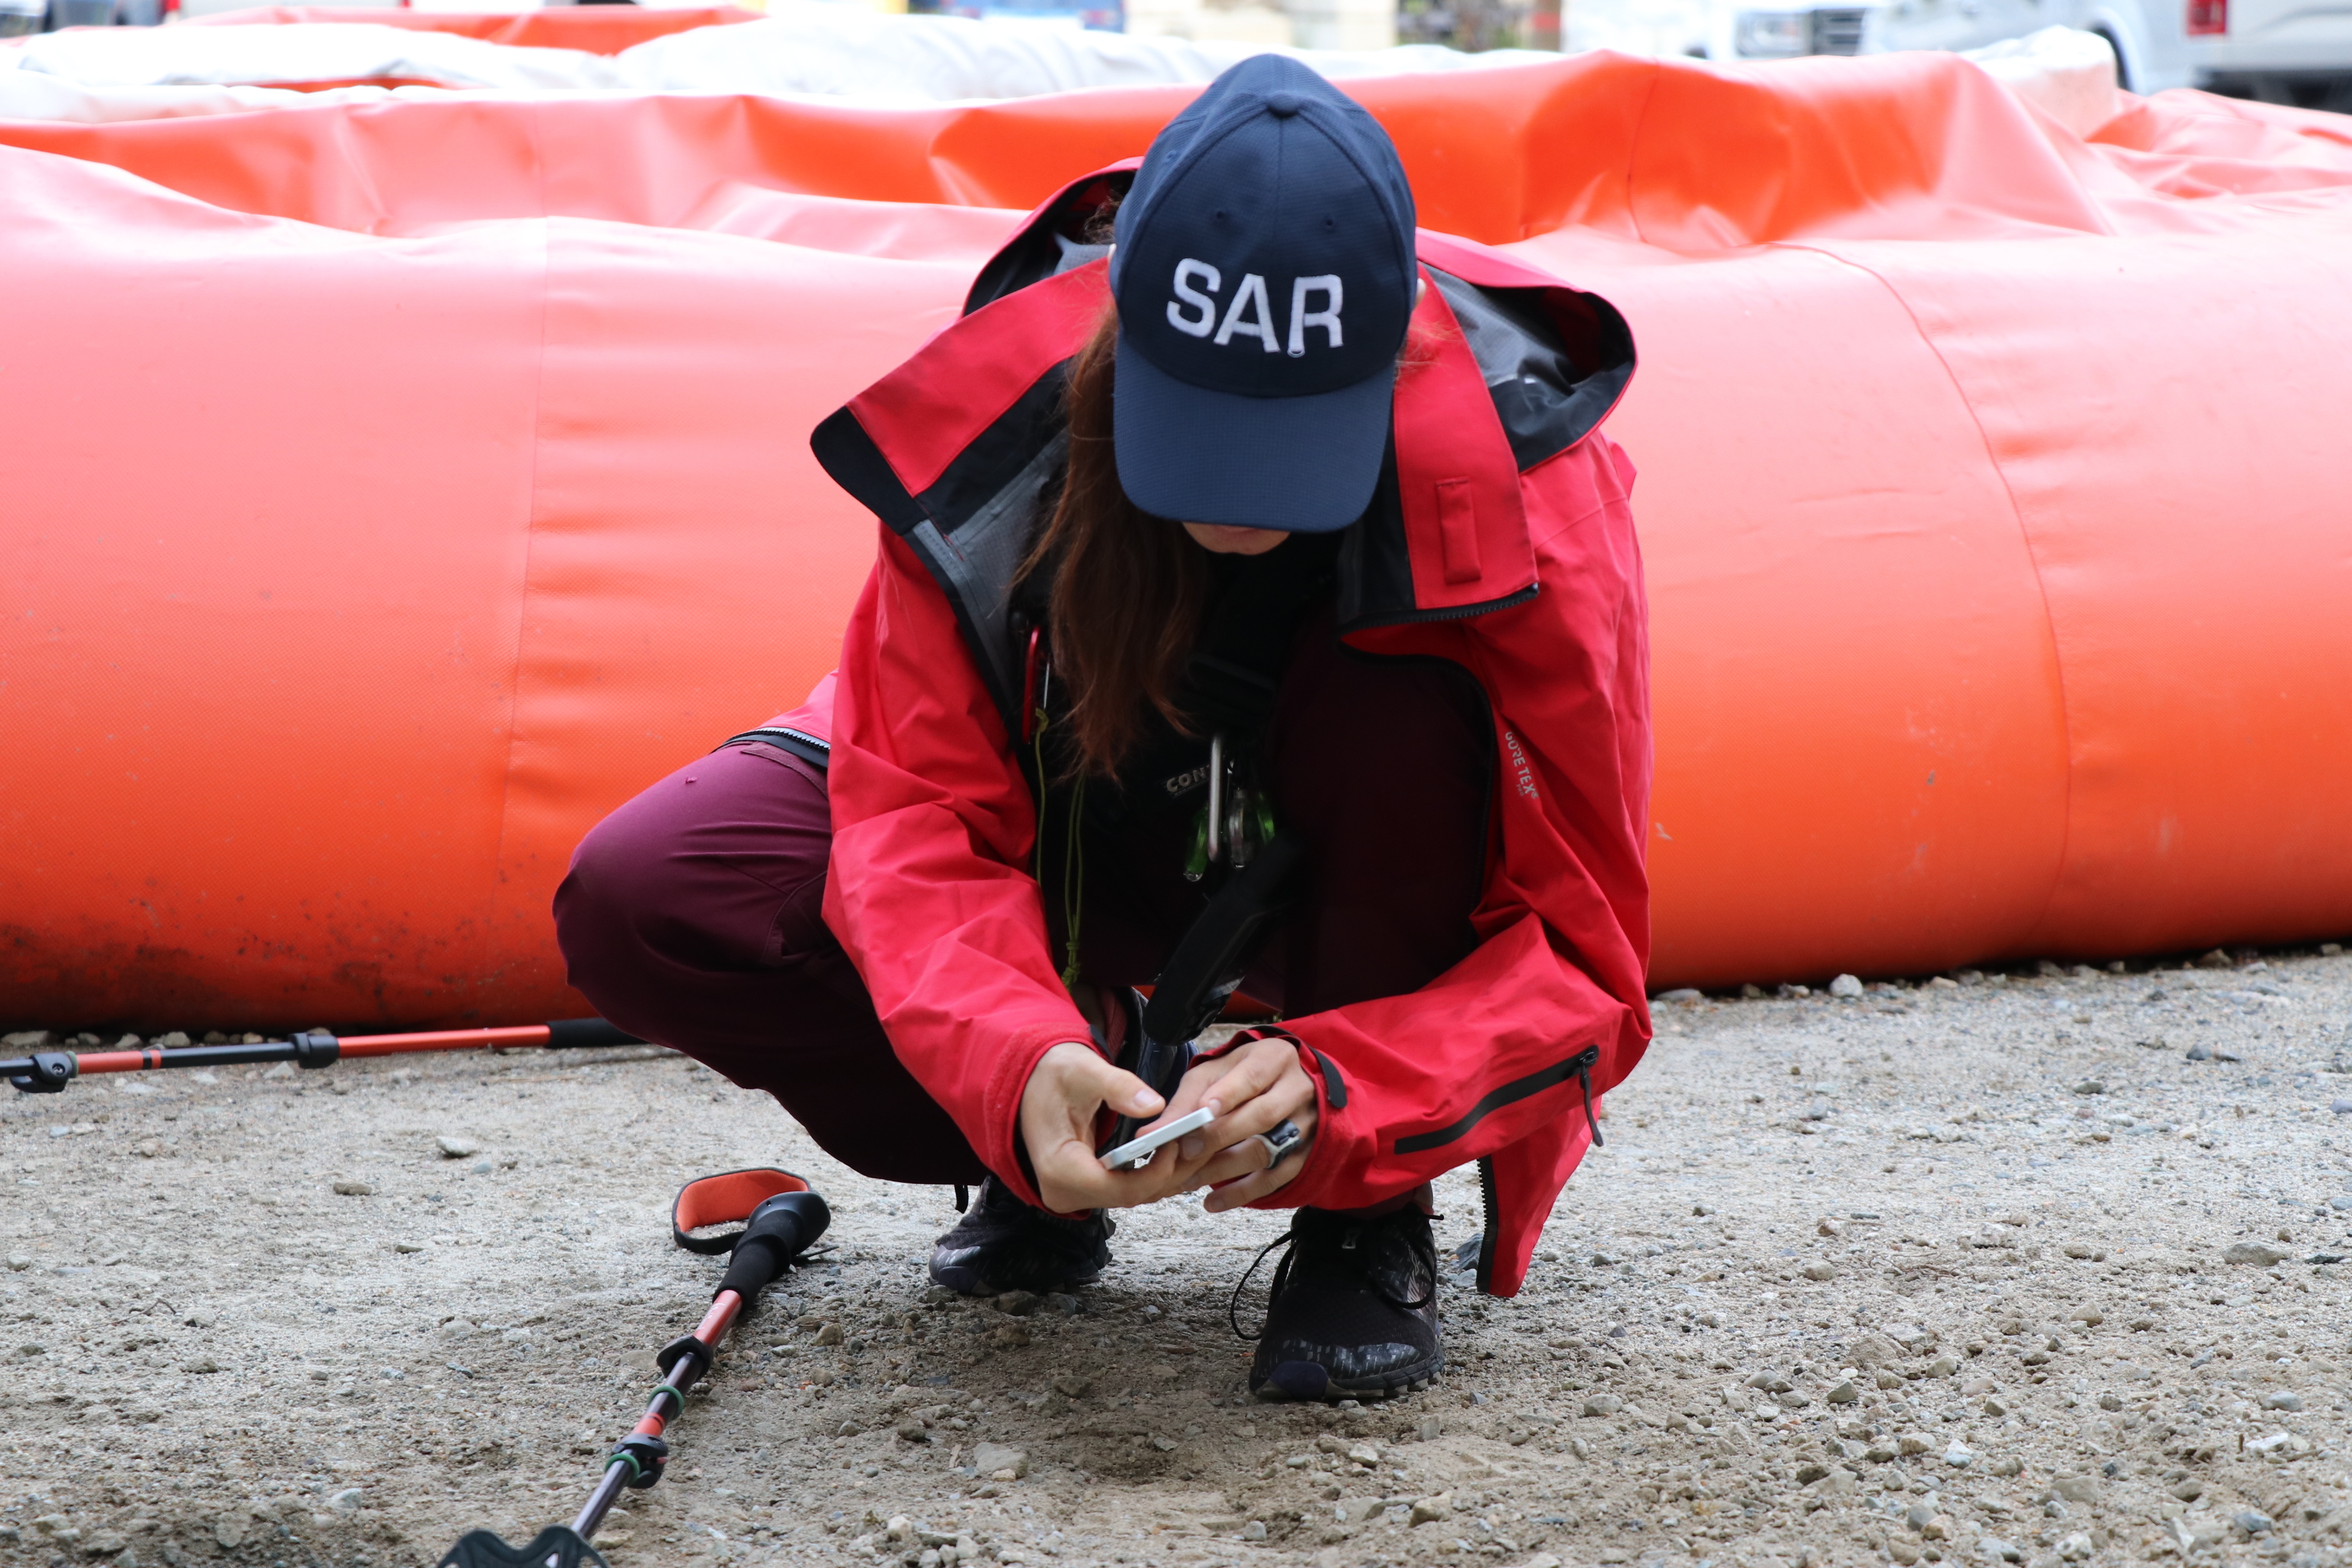 Maria Masiar captures a photo of the footprint with her phone as part of the training exercise. (Clare Hennig/CBC)